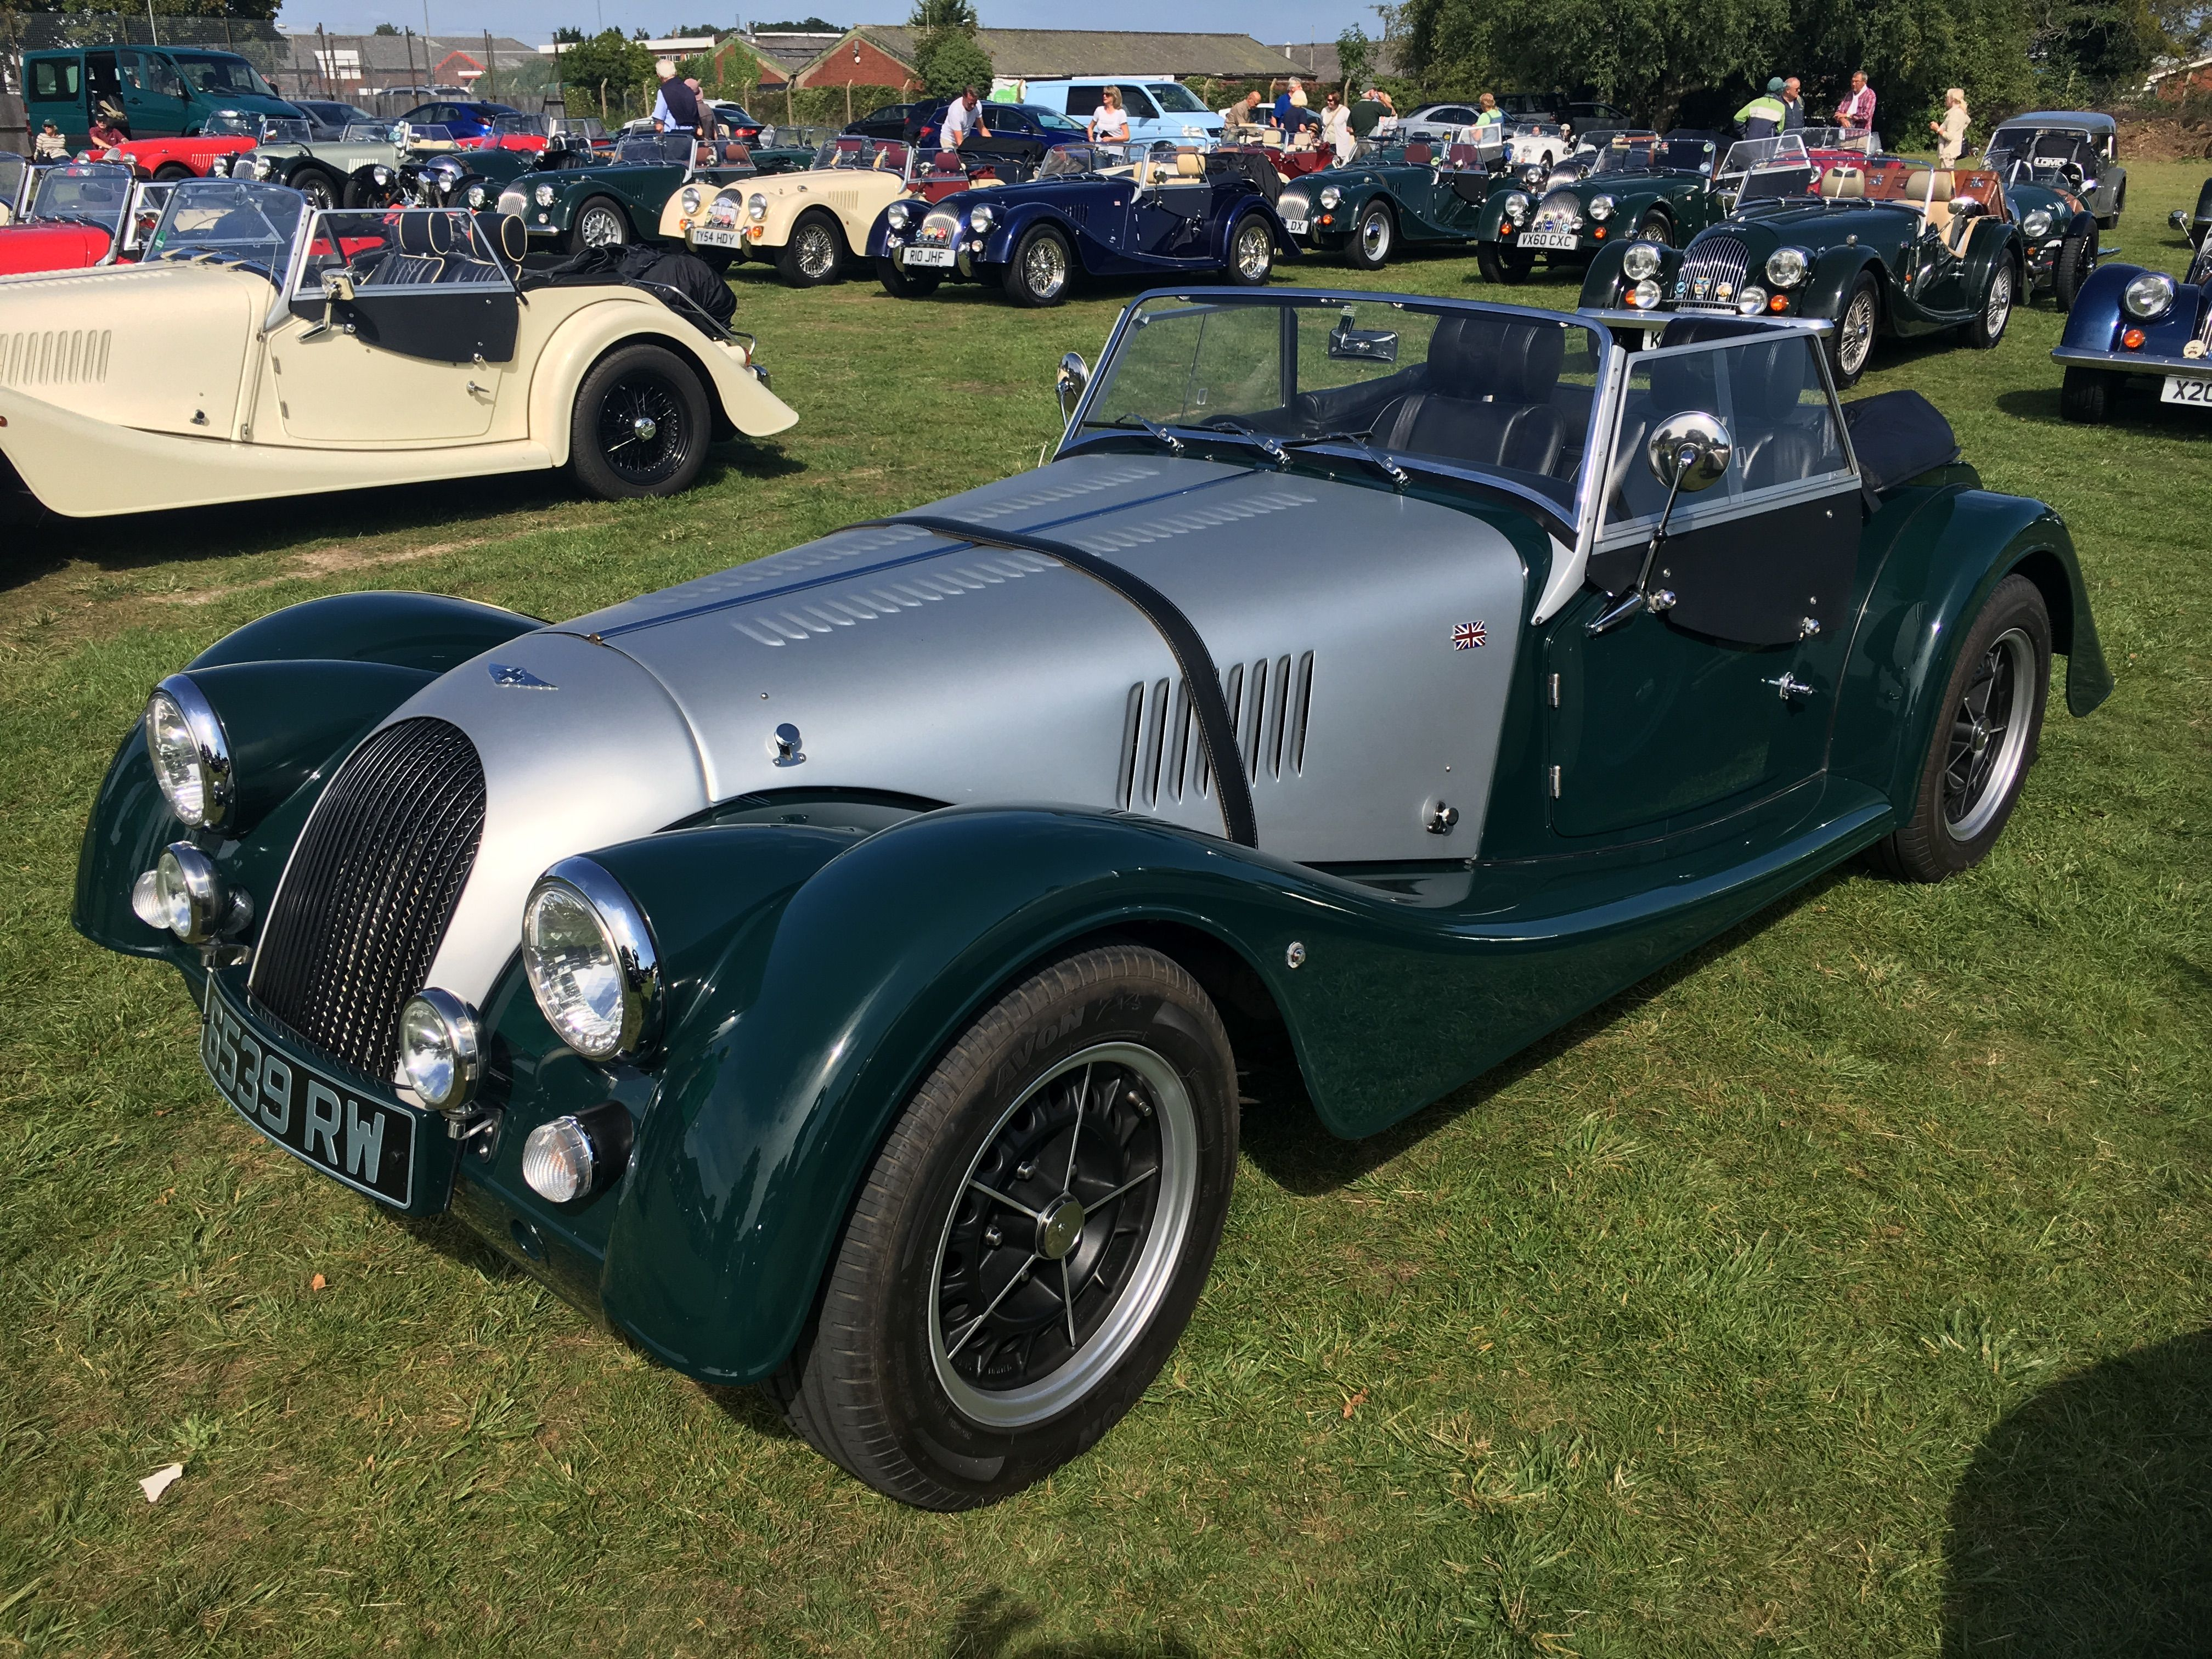 Pin by James Backhouse on Morgan cars - two tone colours | Pinterest ...